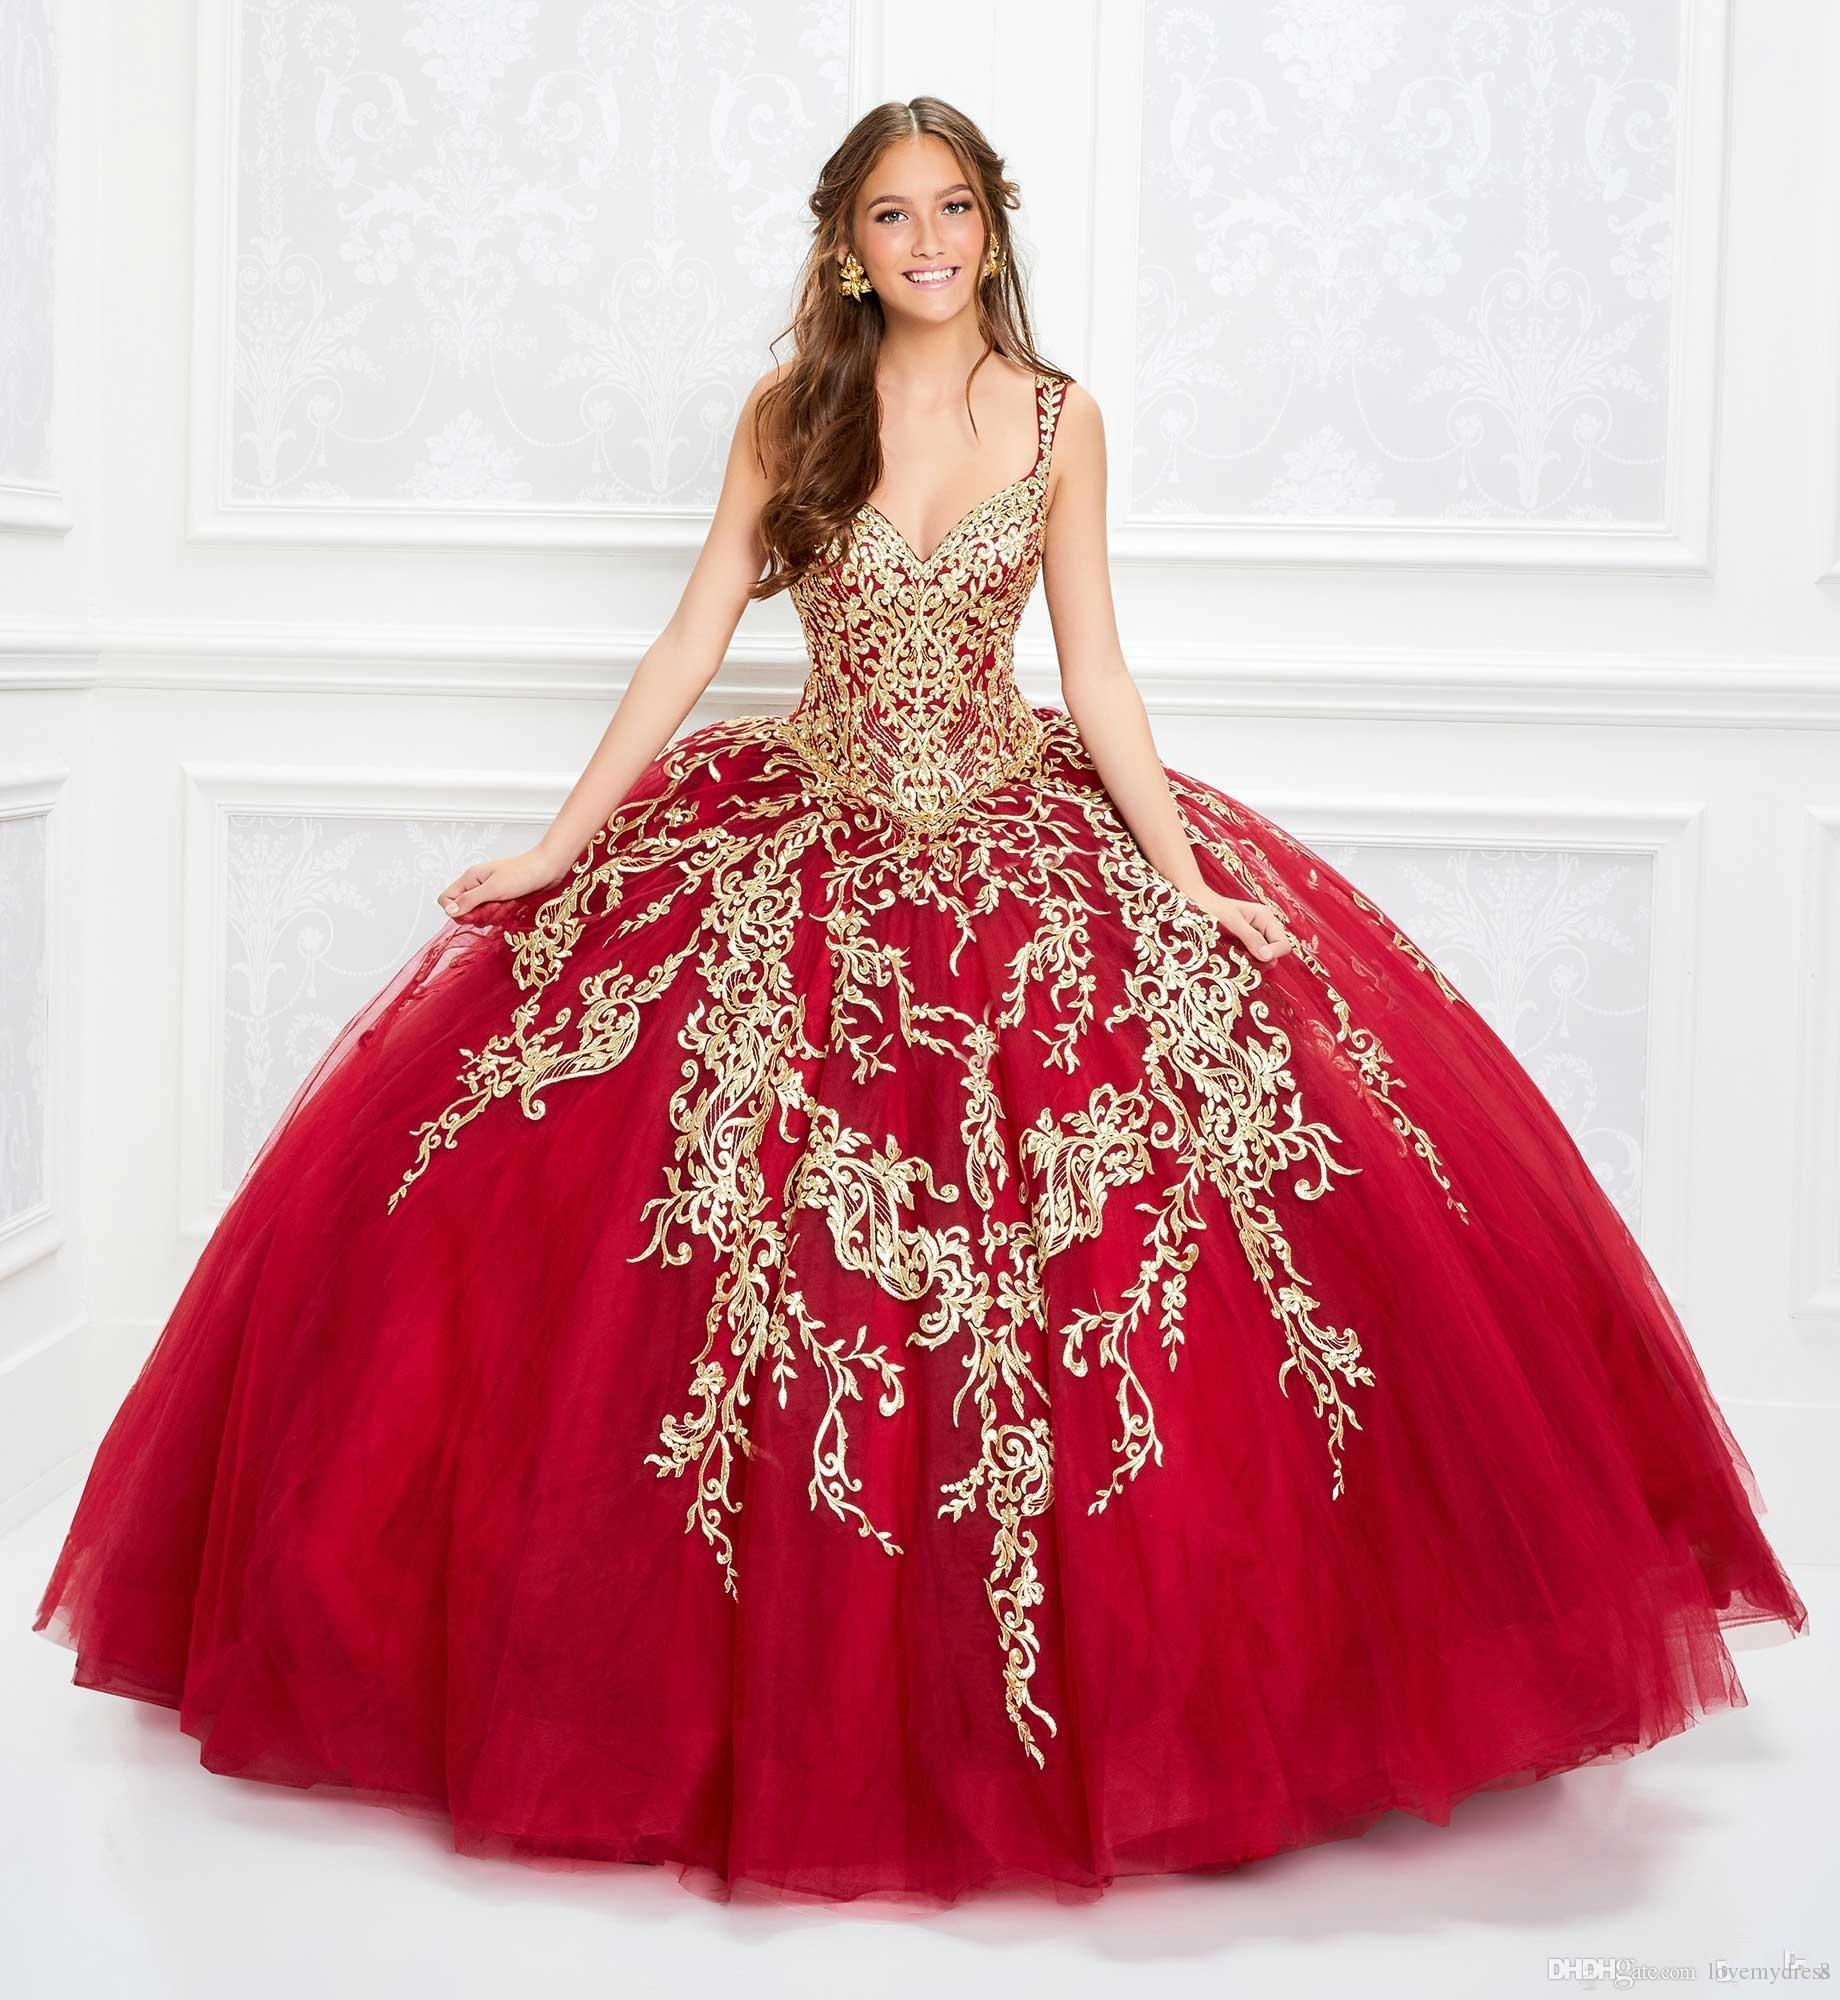 Red Tulle Gold Embroidery Sweet 16 Dresses Vestidos De Quinceanera 2020 Spaghetti V Neck Lace Up Ball Gown Cupcake Prom Dress Graduation Simple